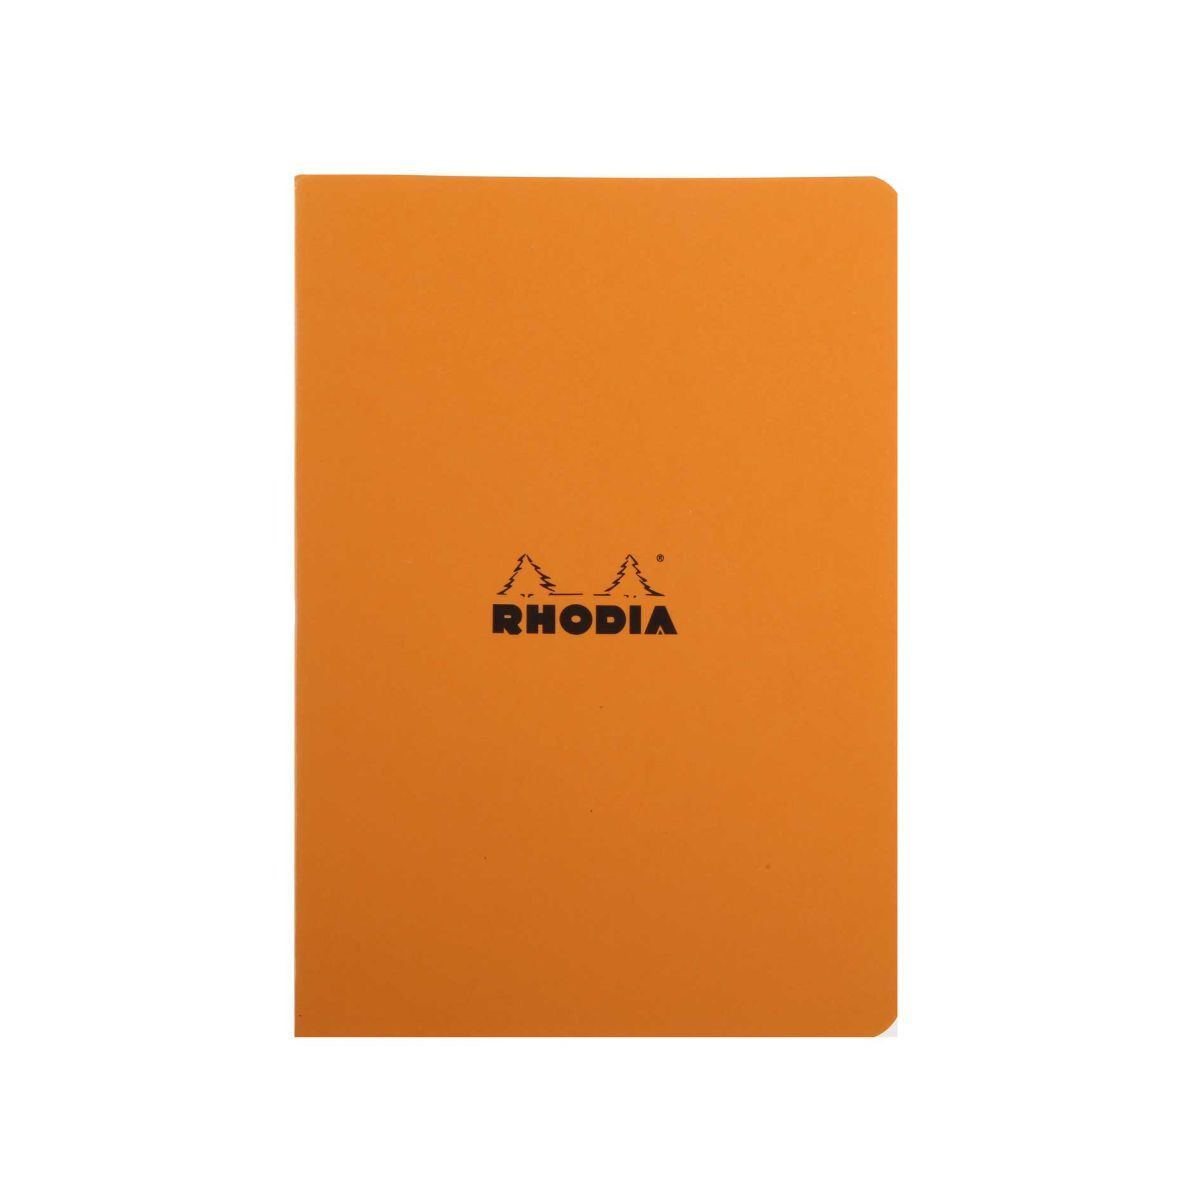 Rhodia Side Stapled Notebook A5 96 Pages 48 Sheets